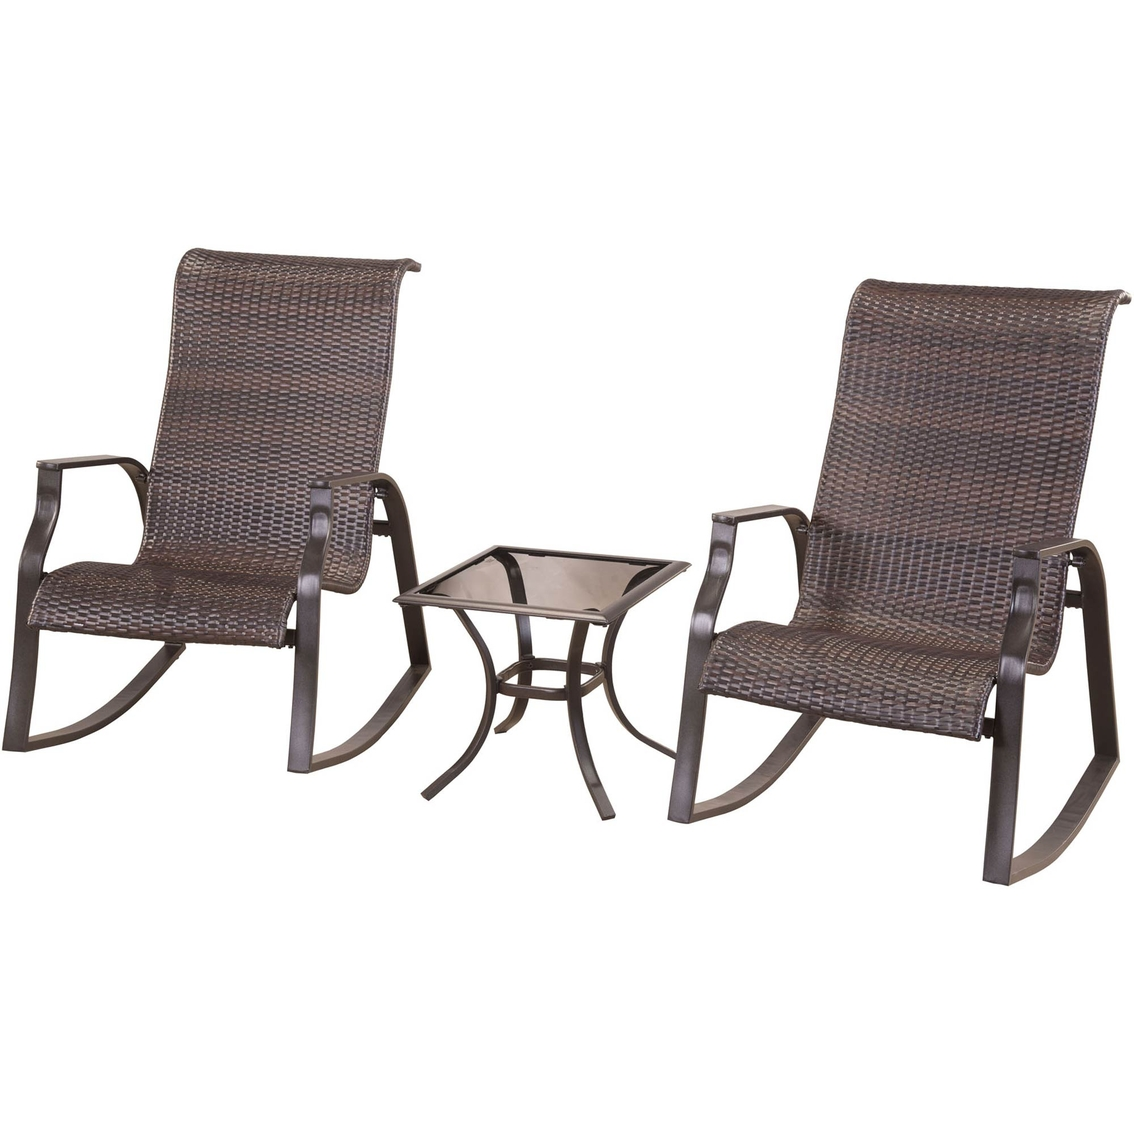 Courtyard Creations Mayfair 3 Pc. Wicker Rocker Set